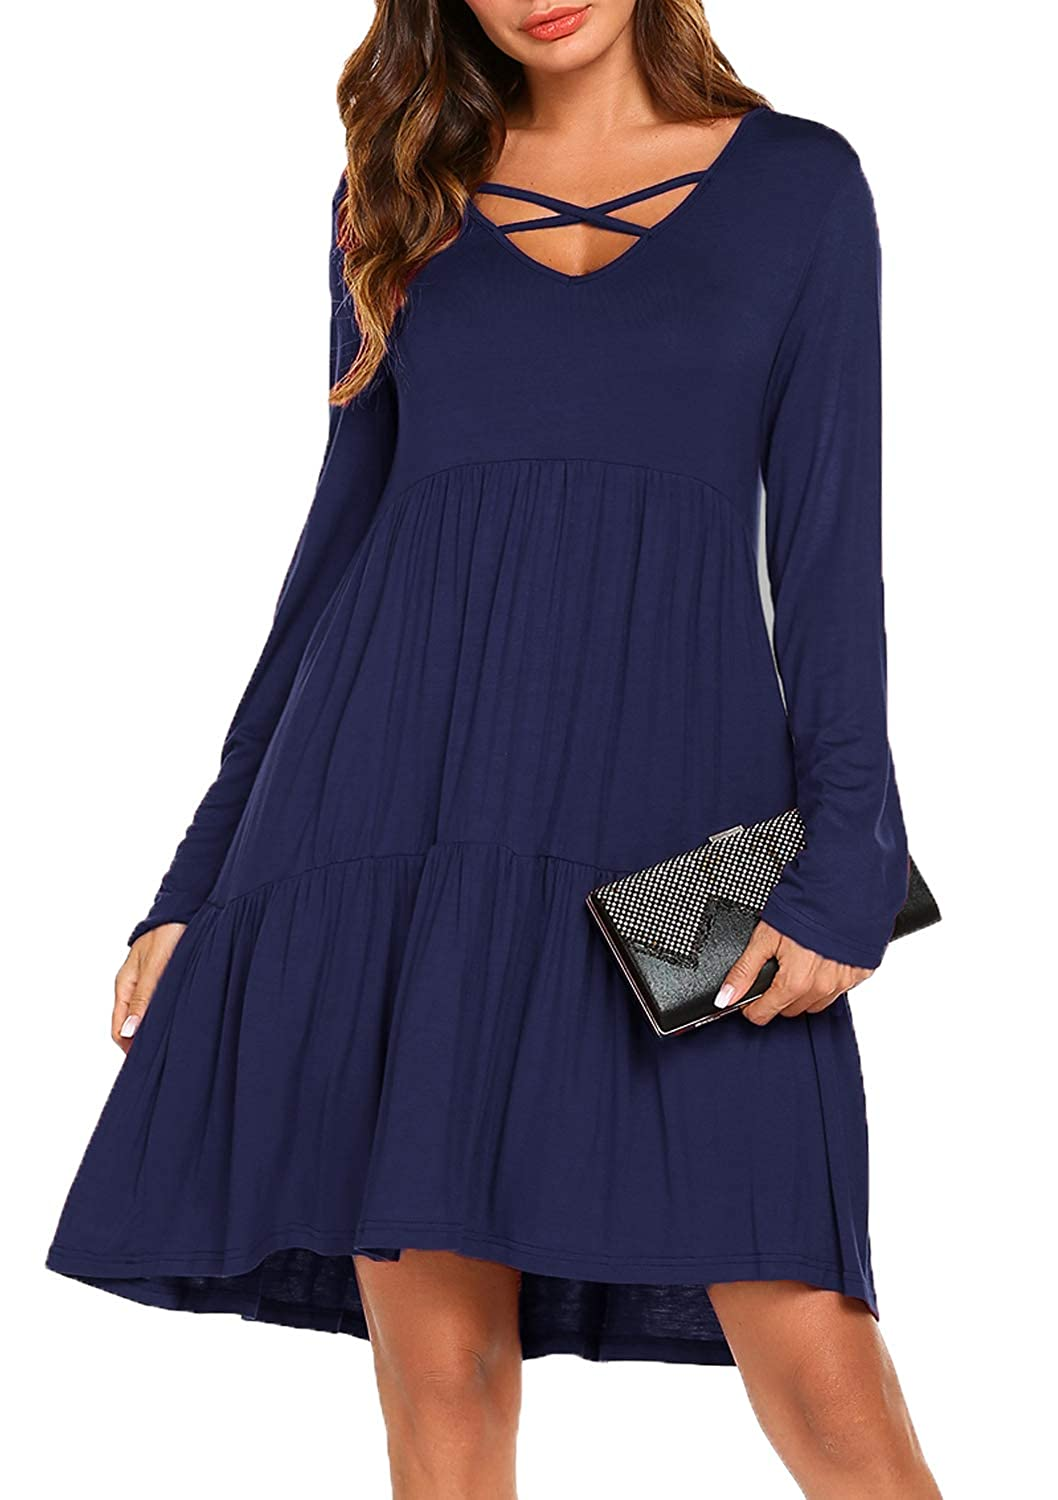 01navy bluee POGTMM Women's Casual Long Sleeve Aline Shift T Shirt Dress Lace Hem Knitted Sweater Dress